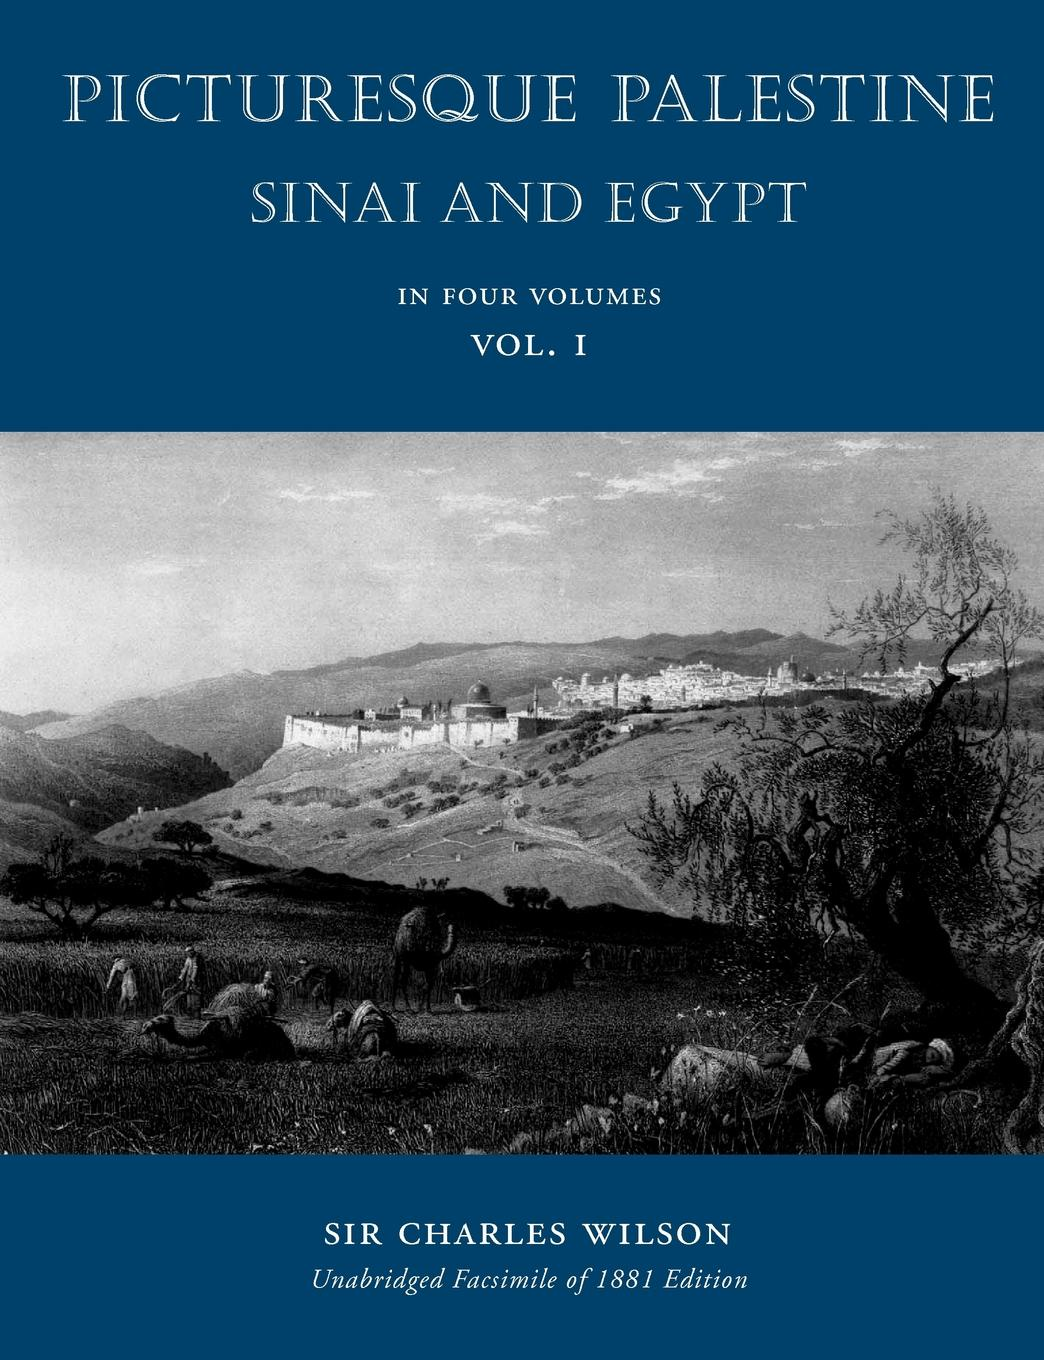 Charles Wilson Picturesque Palestine. Sinai and Egypt: Volume I